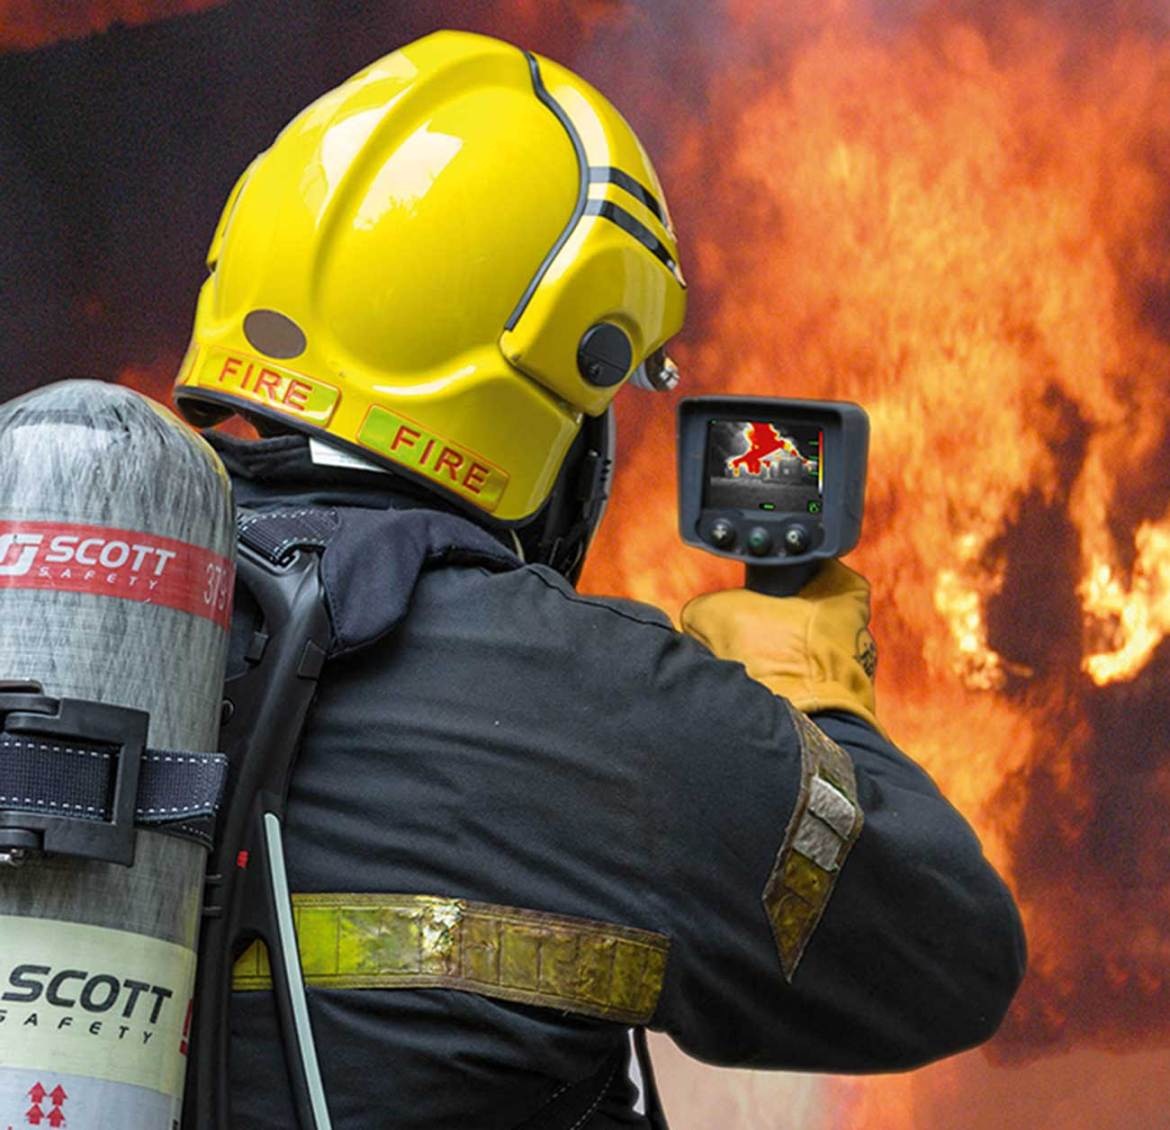 Improving situational awareness with thermal imaging technology.